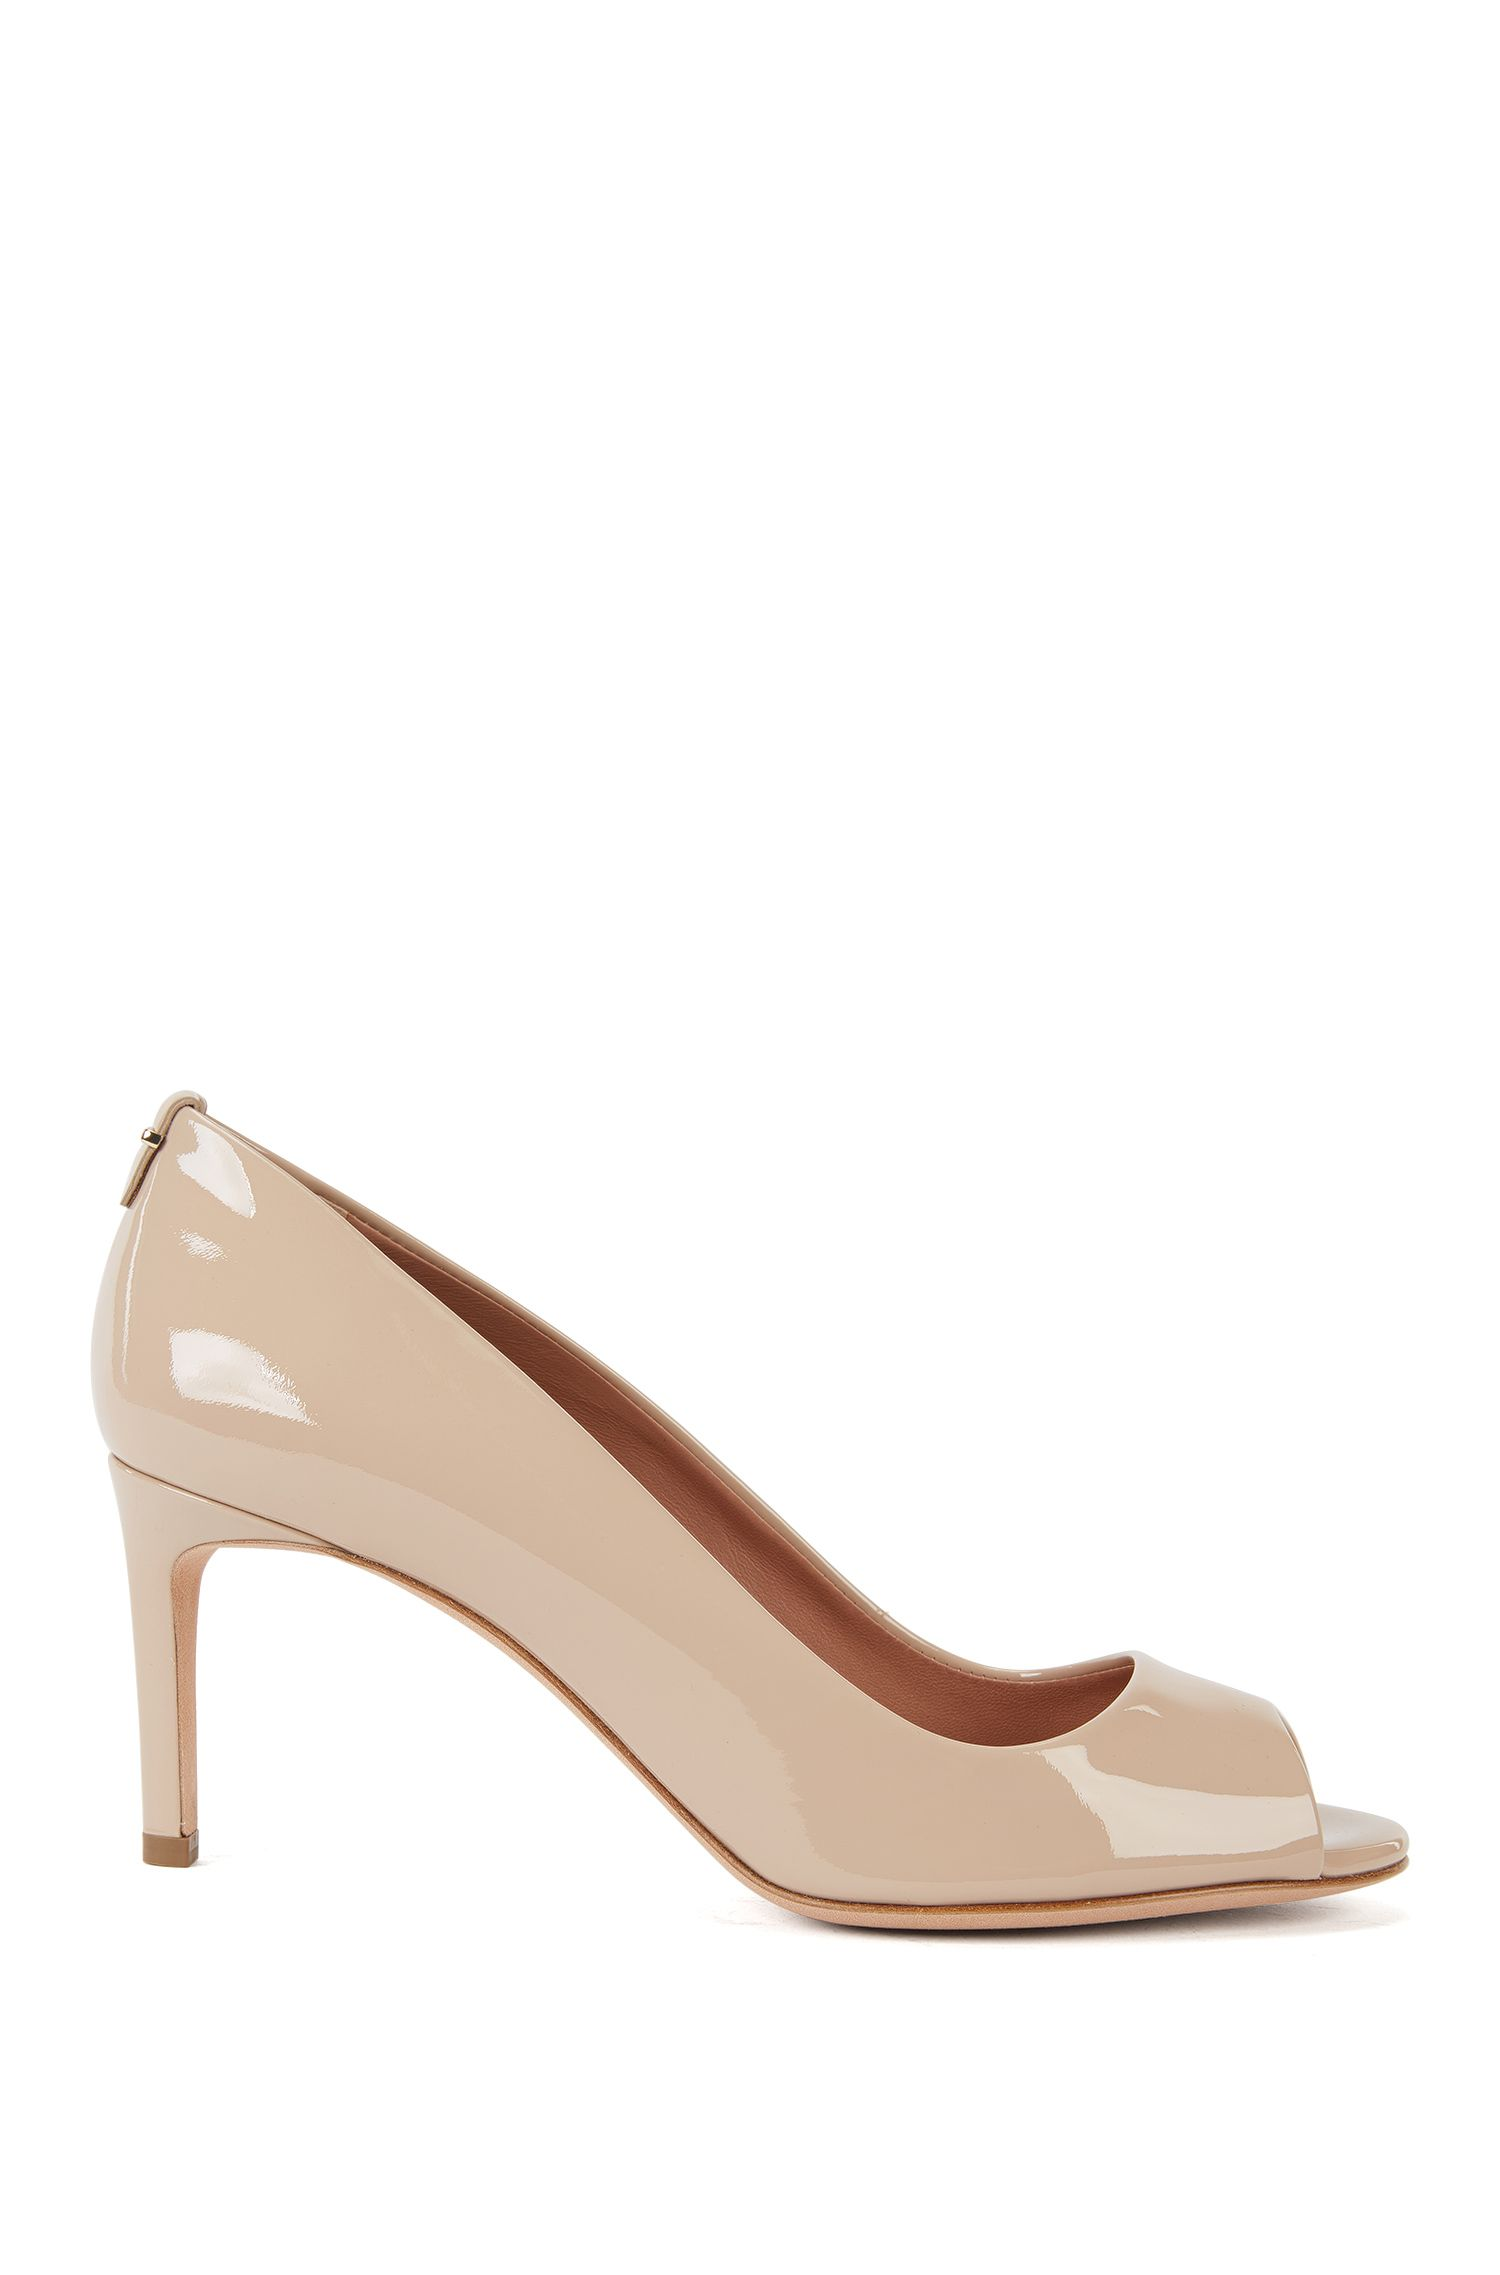 Pumps uit de Luxury Staple-collectie van BOSS, van Italiaans lakleer met open neus